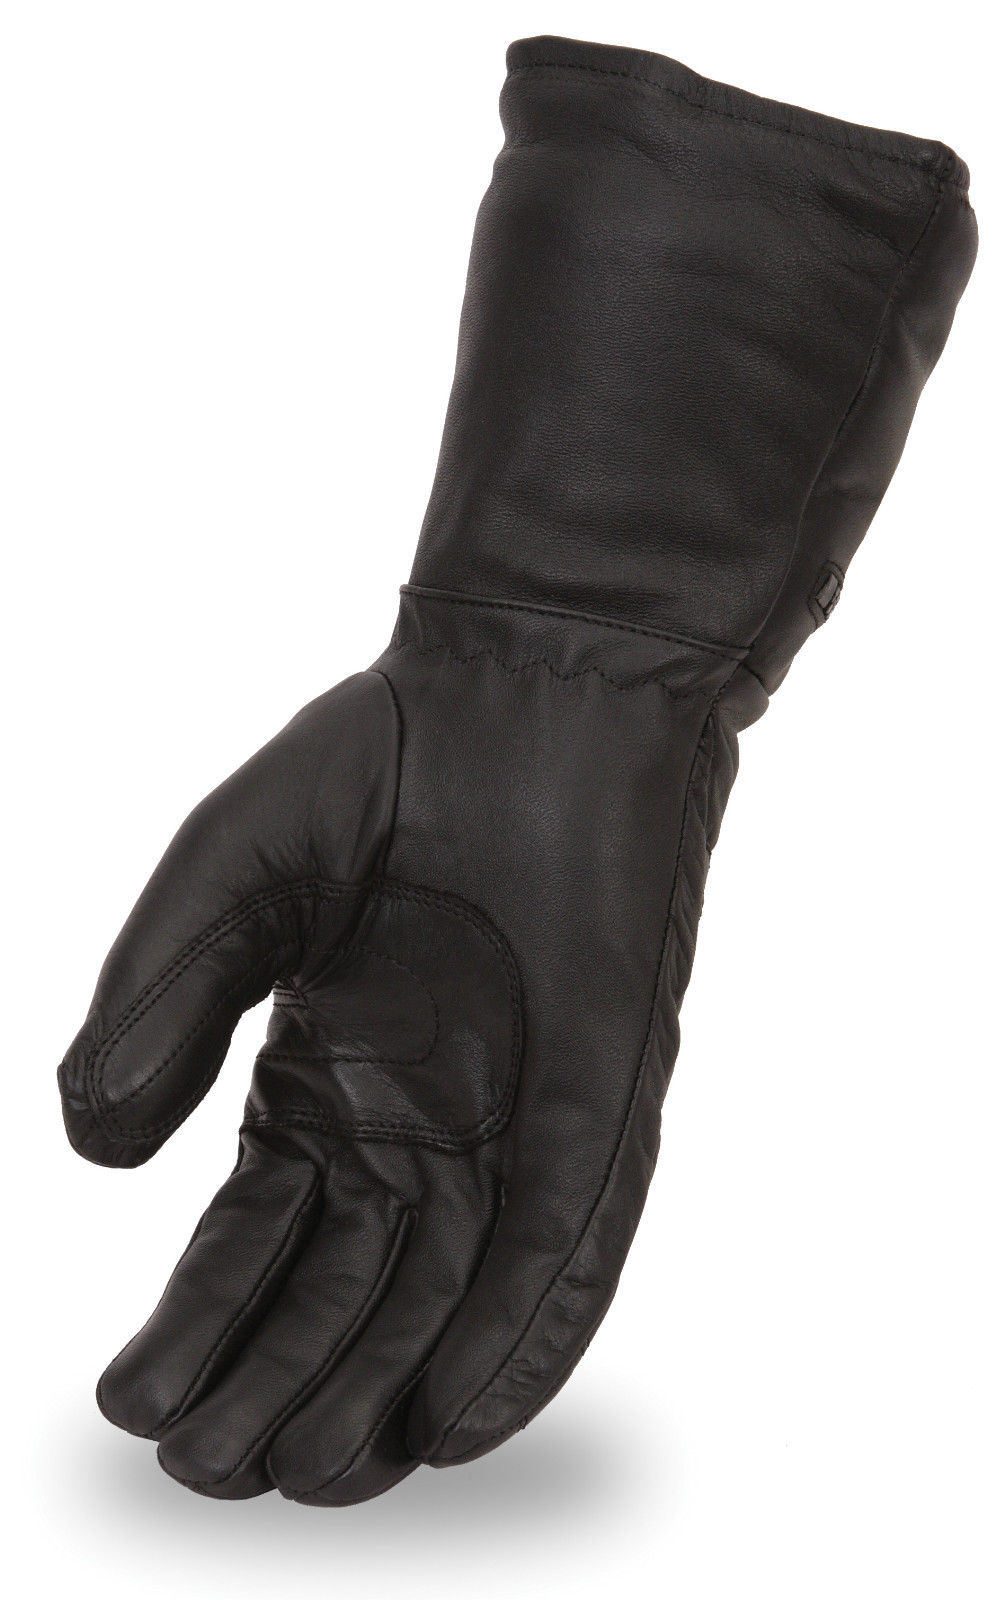 Insulated leather motorcycle gloves - Men 039 S Leather Motorcycle Gauntlet Gloves W Removable Waterproof Liner Fi120gl Ebay